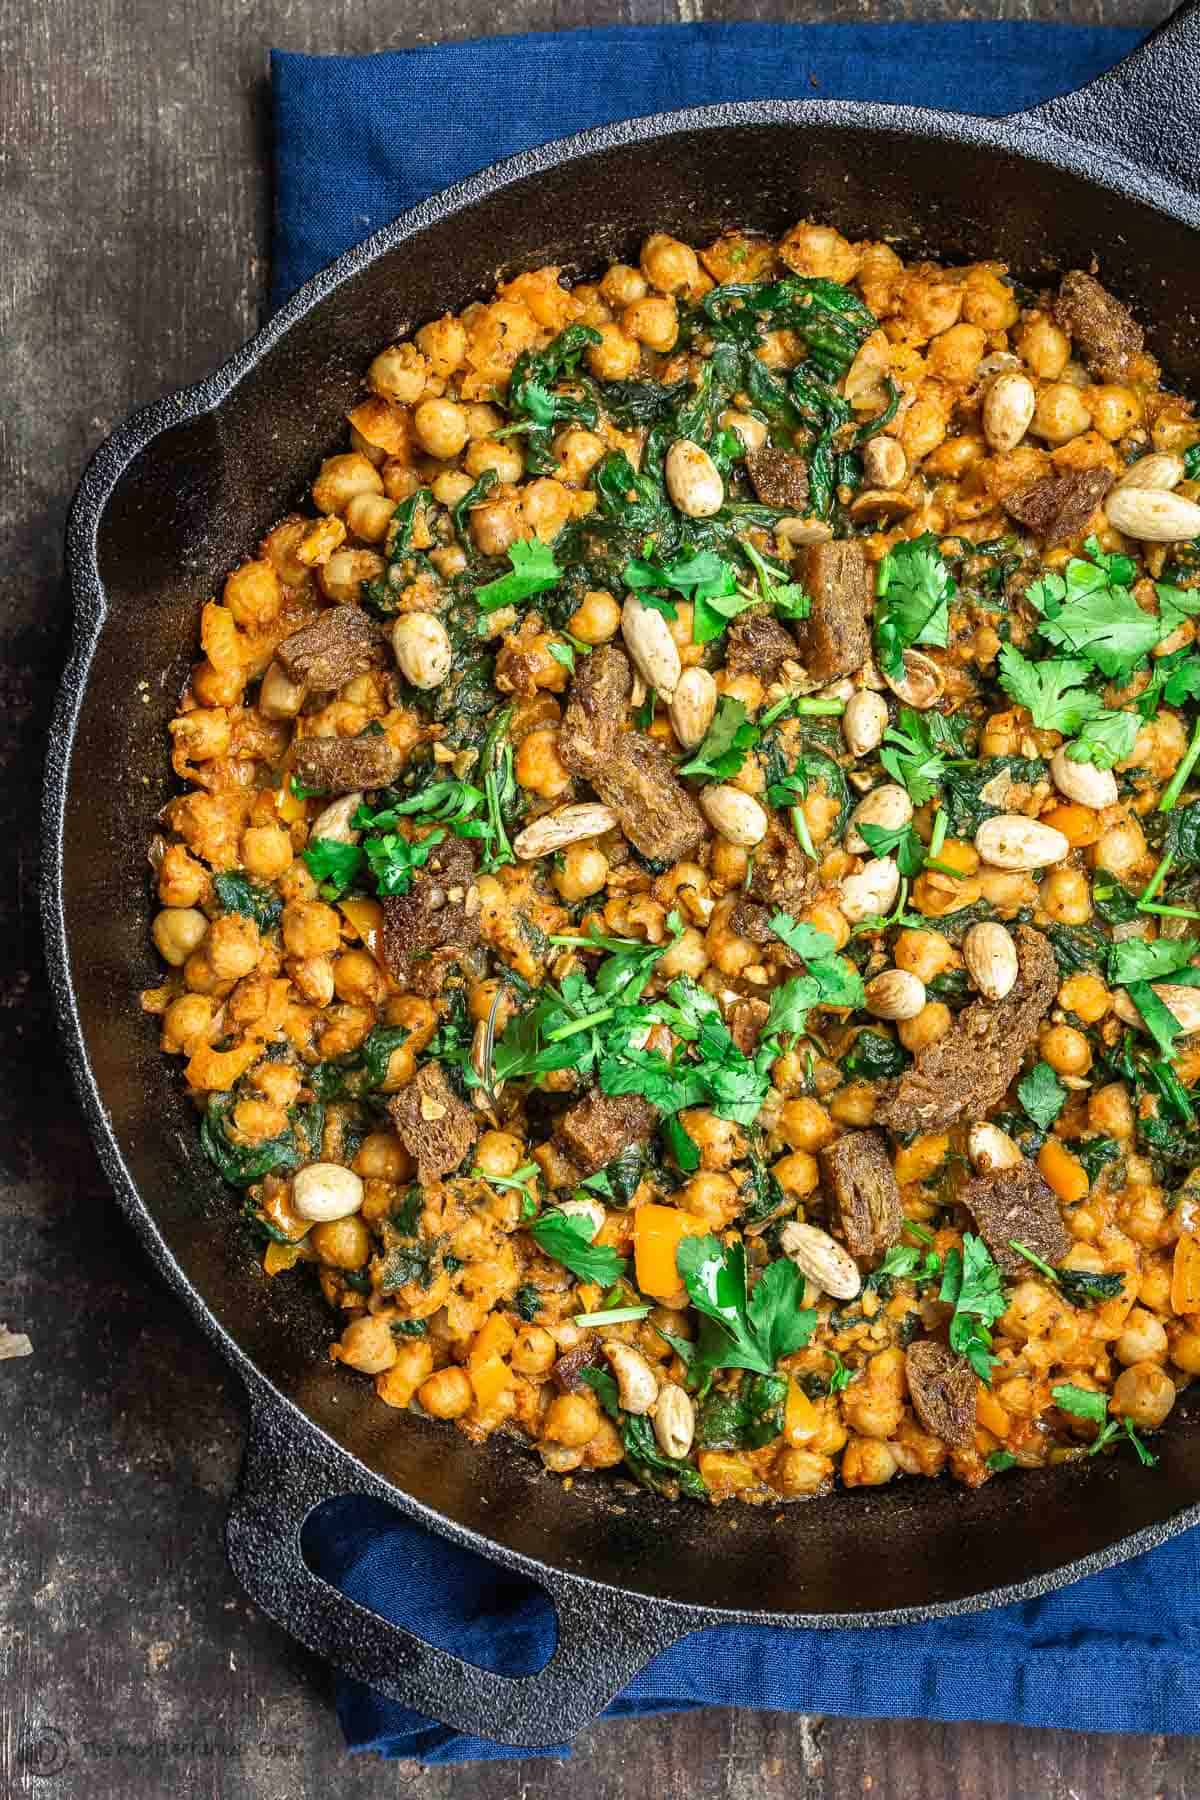 Finished skillet of Chickpea Stew with a garnish of almonds and cilantro